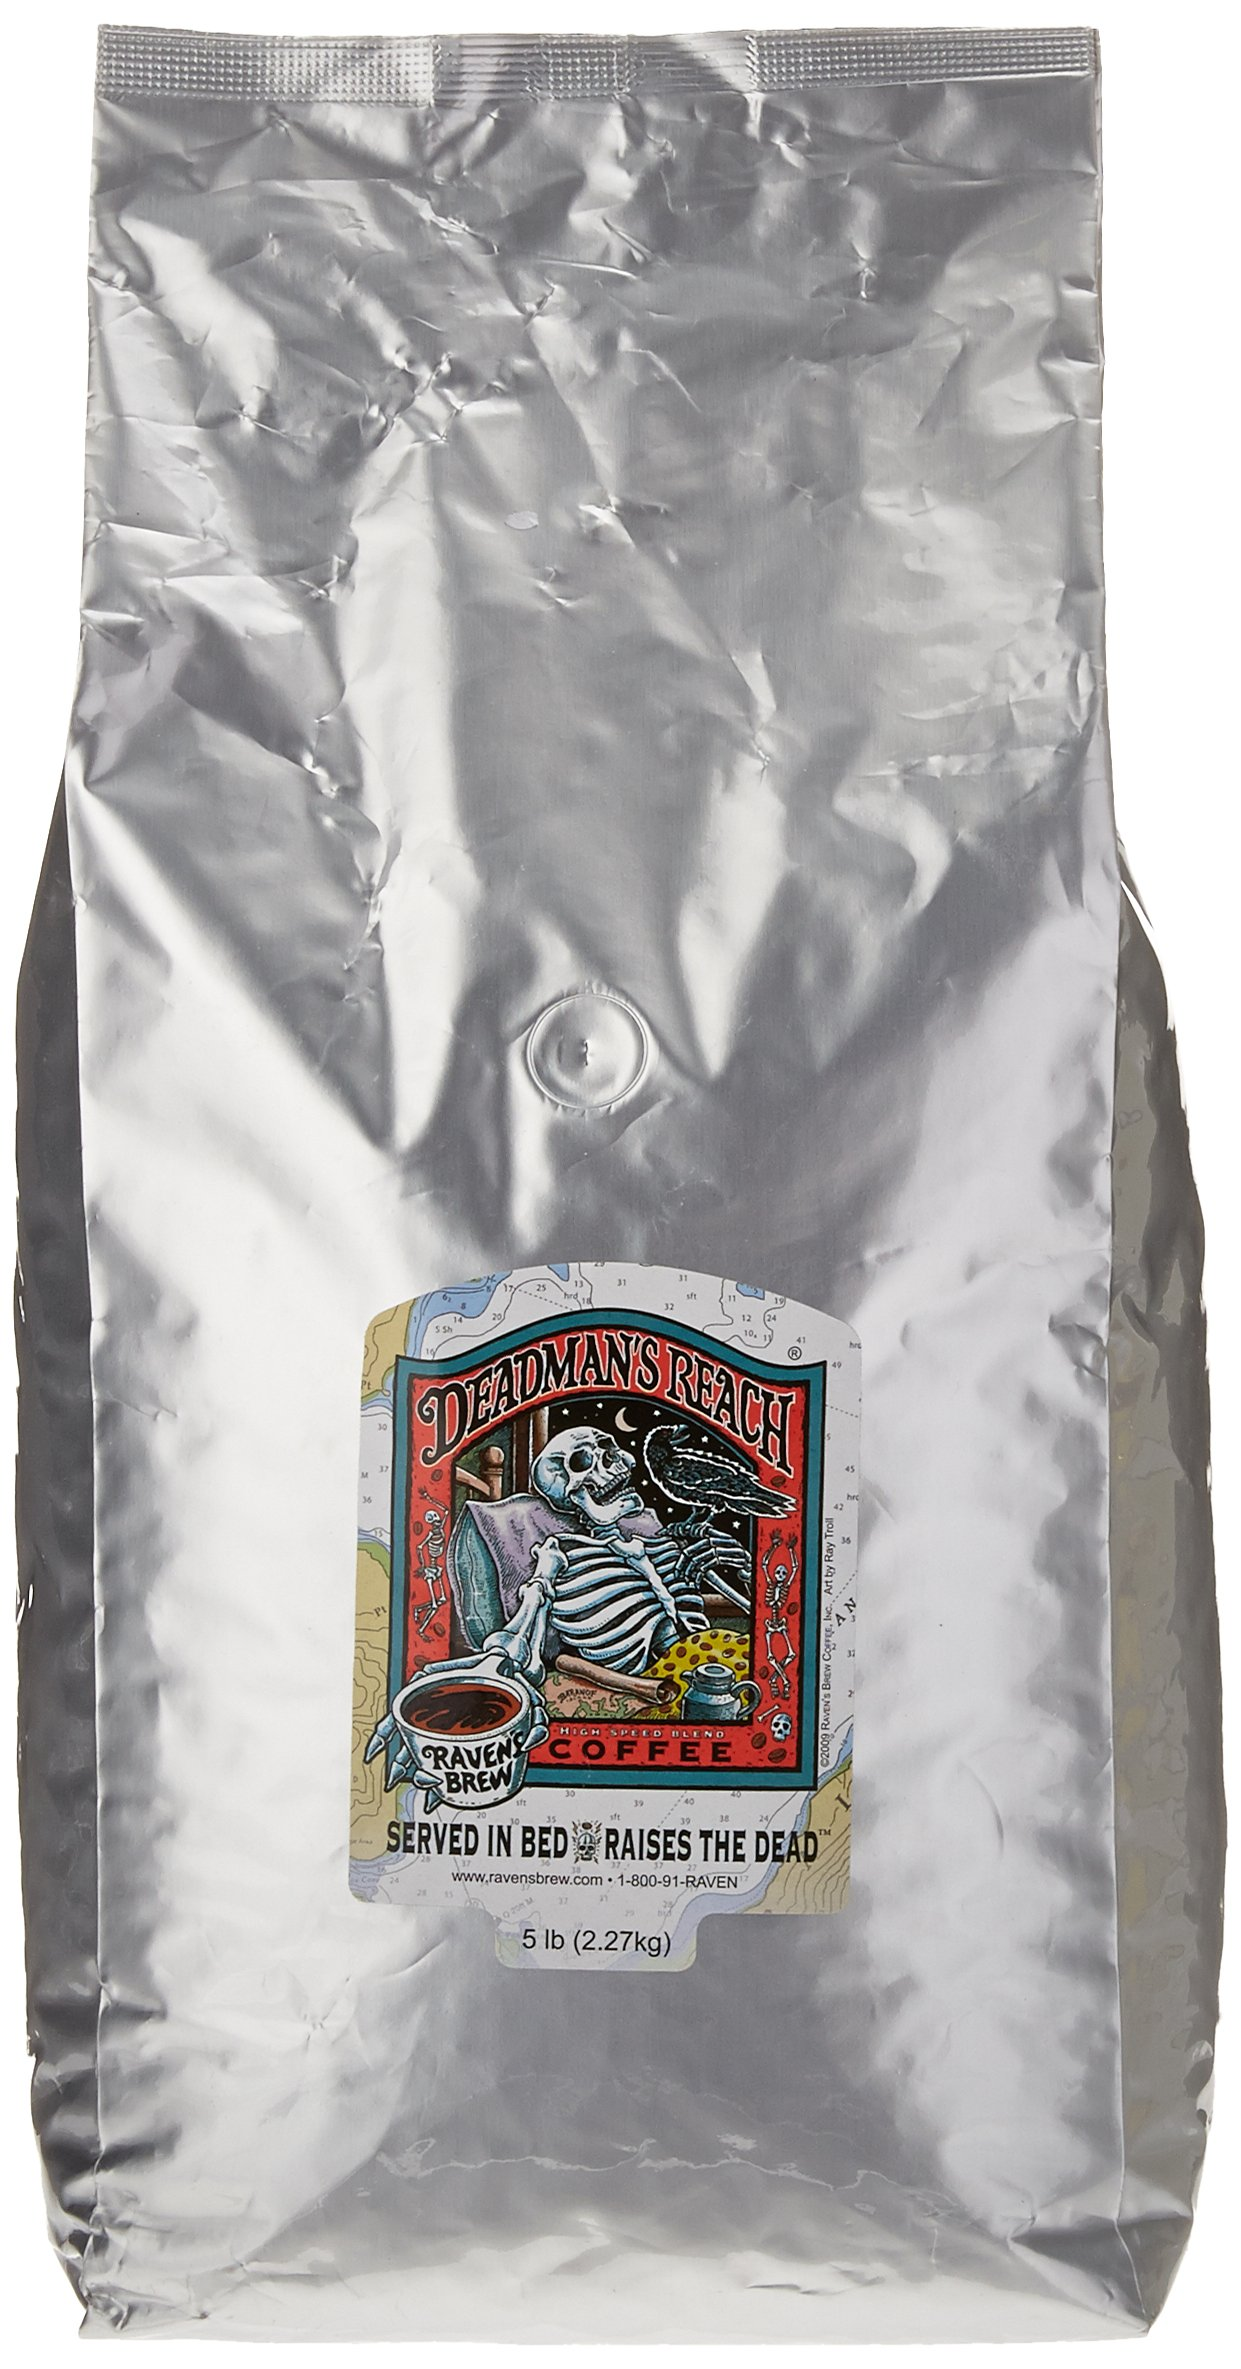 Ravens Brew Whole Bean Deadman's Reach, Dark Roast 5-Pound Bag